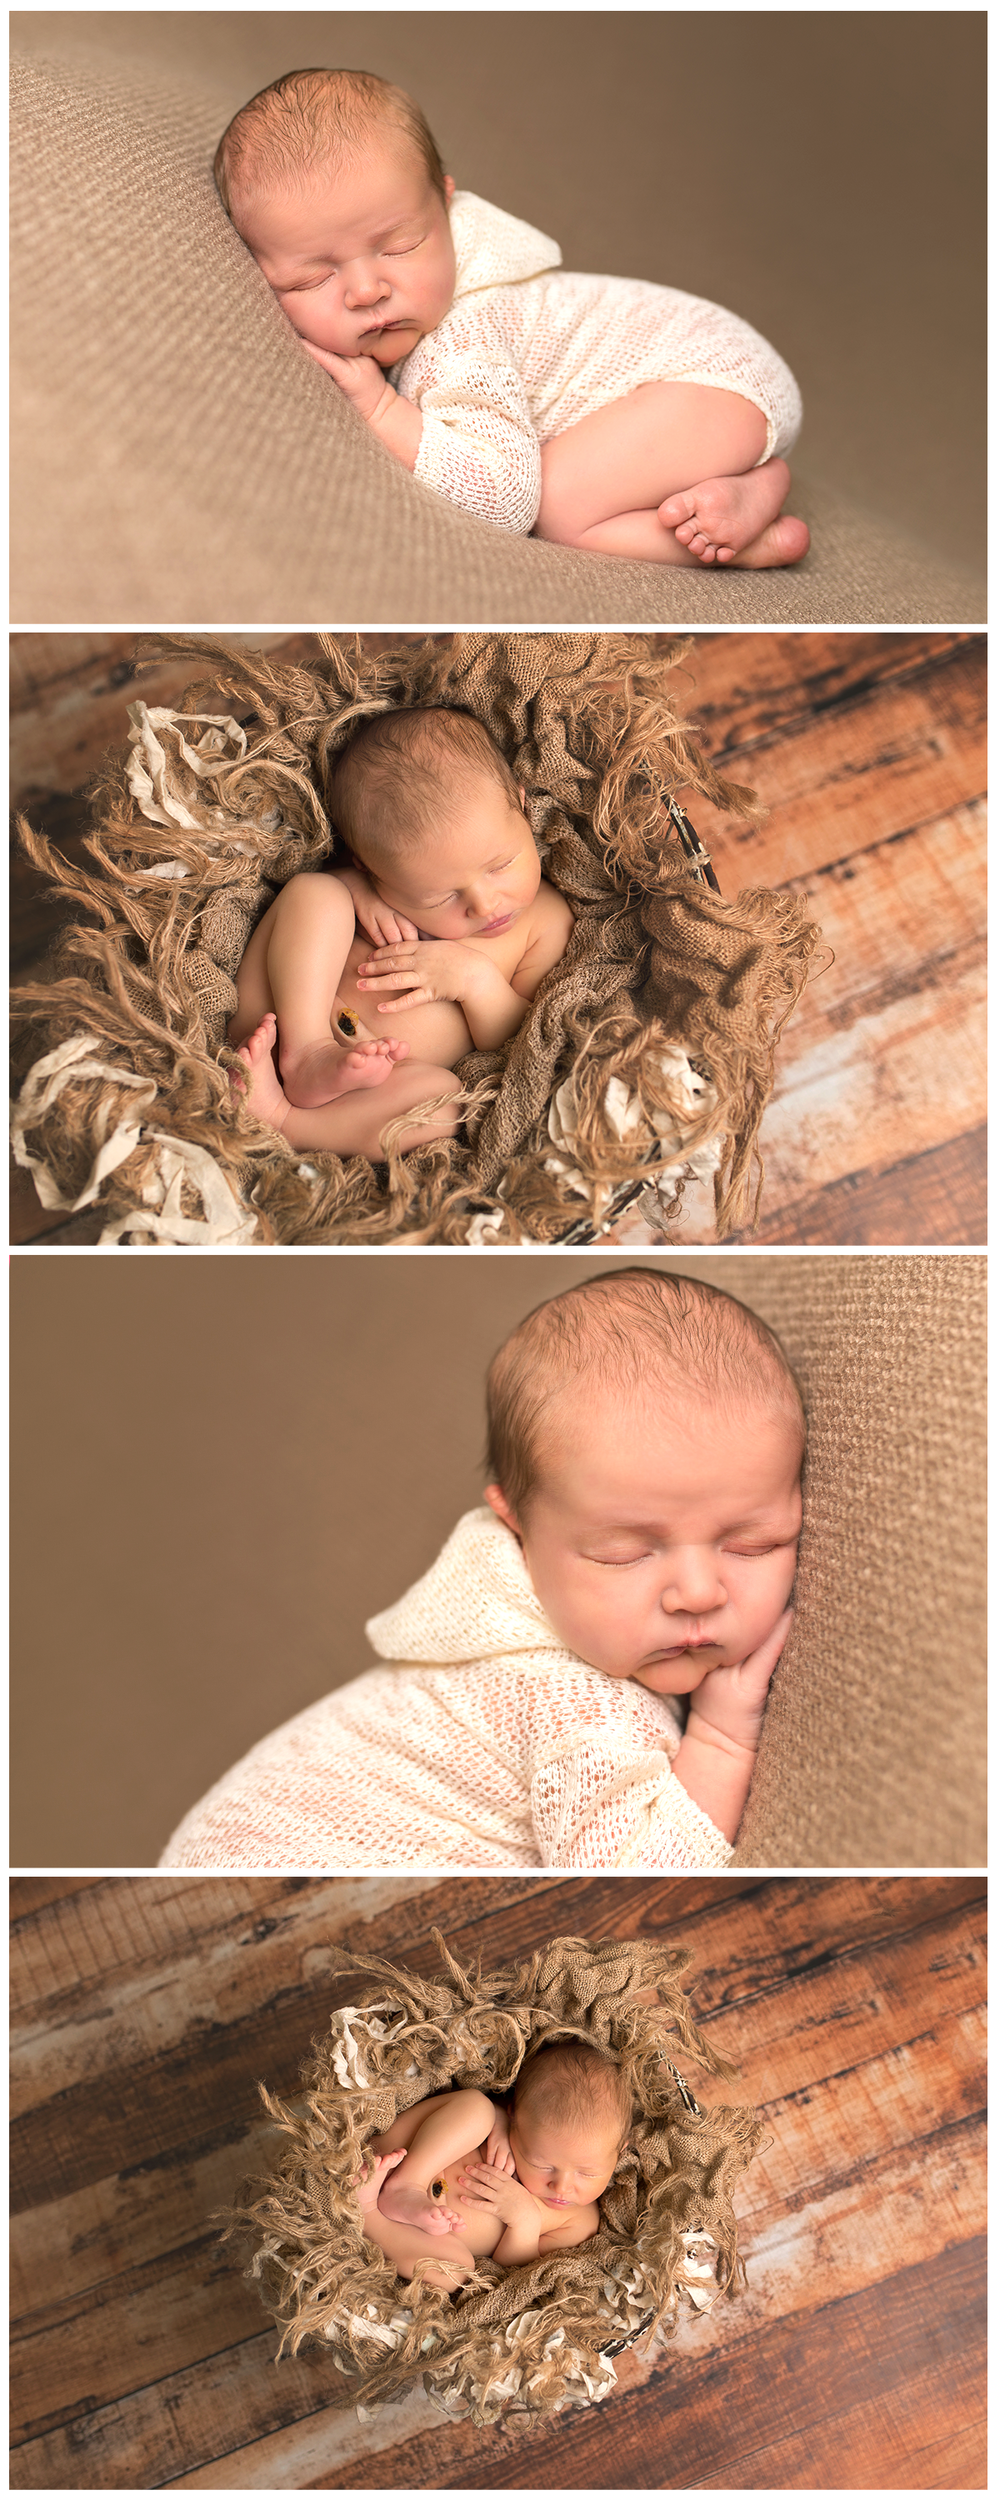 Heber Park City Utah Newborn Photographer  Utah Newborn Photography #twyladawnphotography